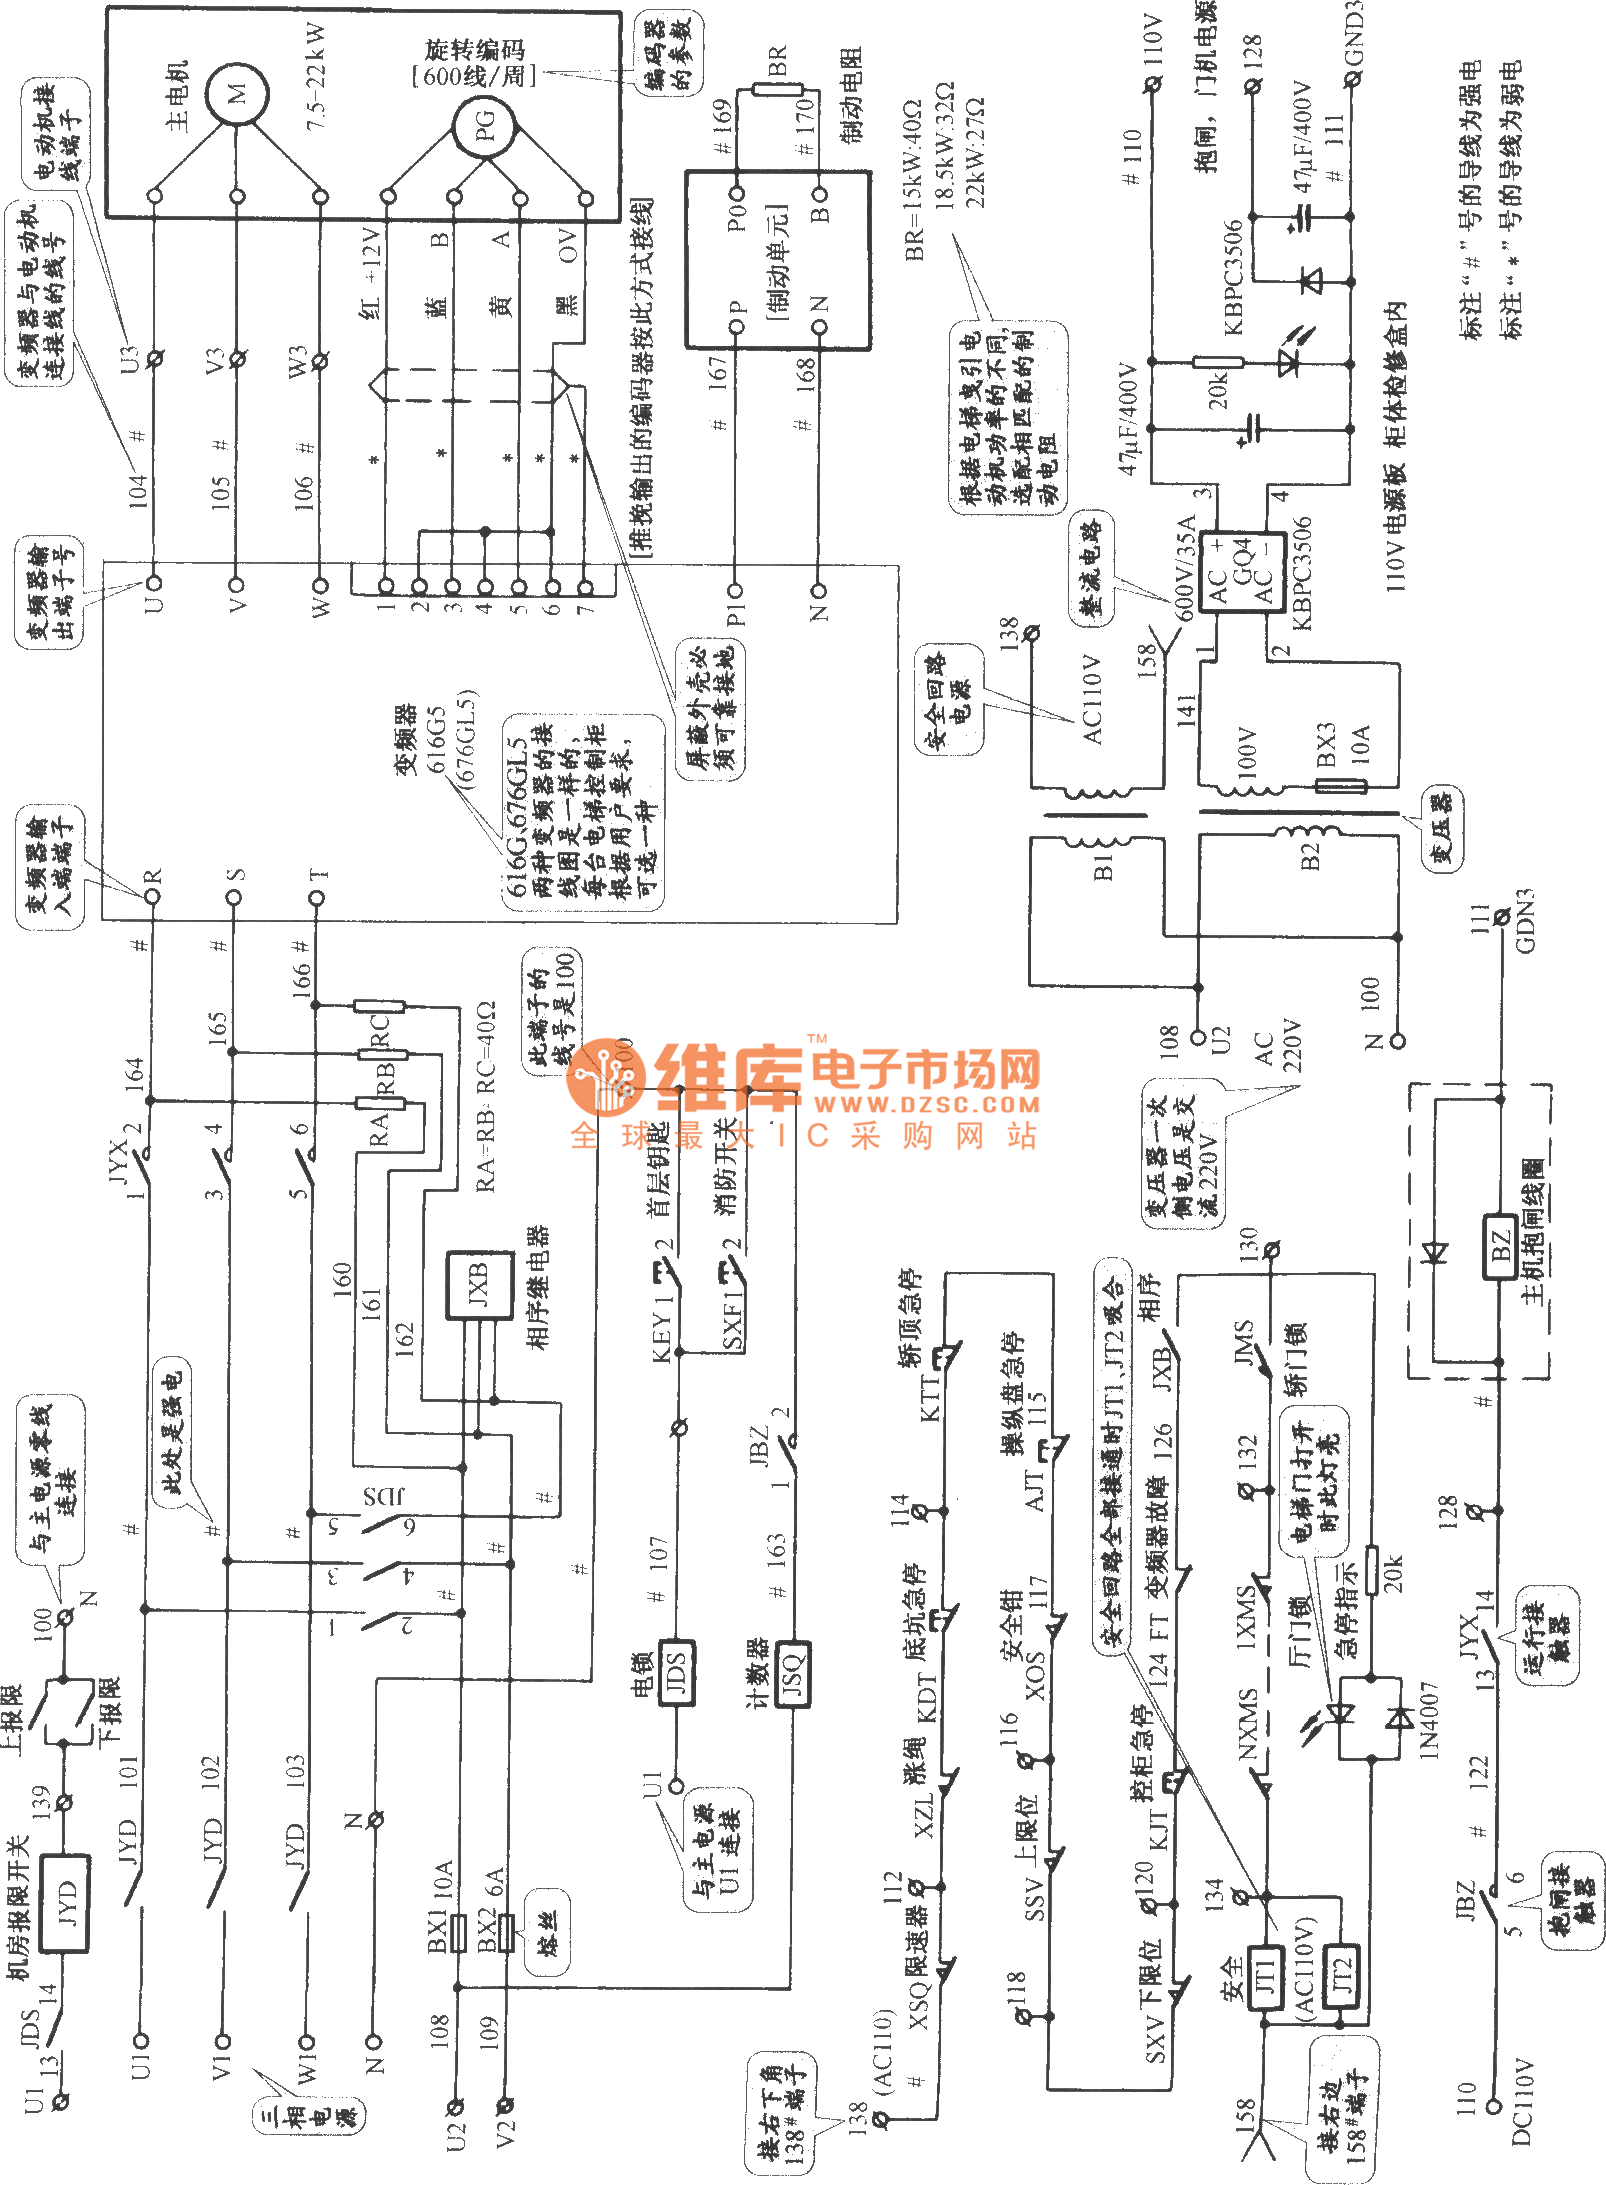 Tianjin Zhengda Elevator Main Circuit And Safety Seekiccom Circuitdiagram Automotivecircuit Soundgeneratorcircuit